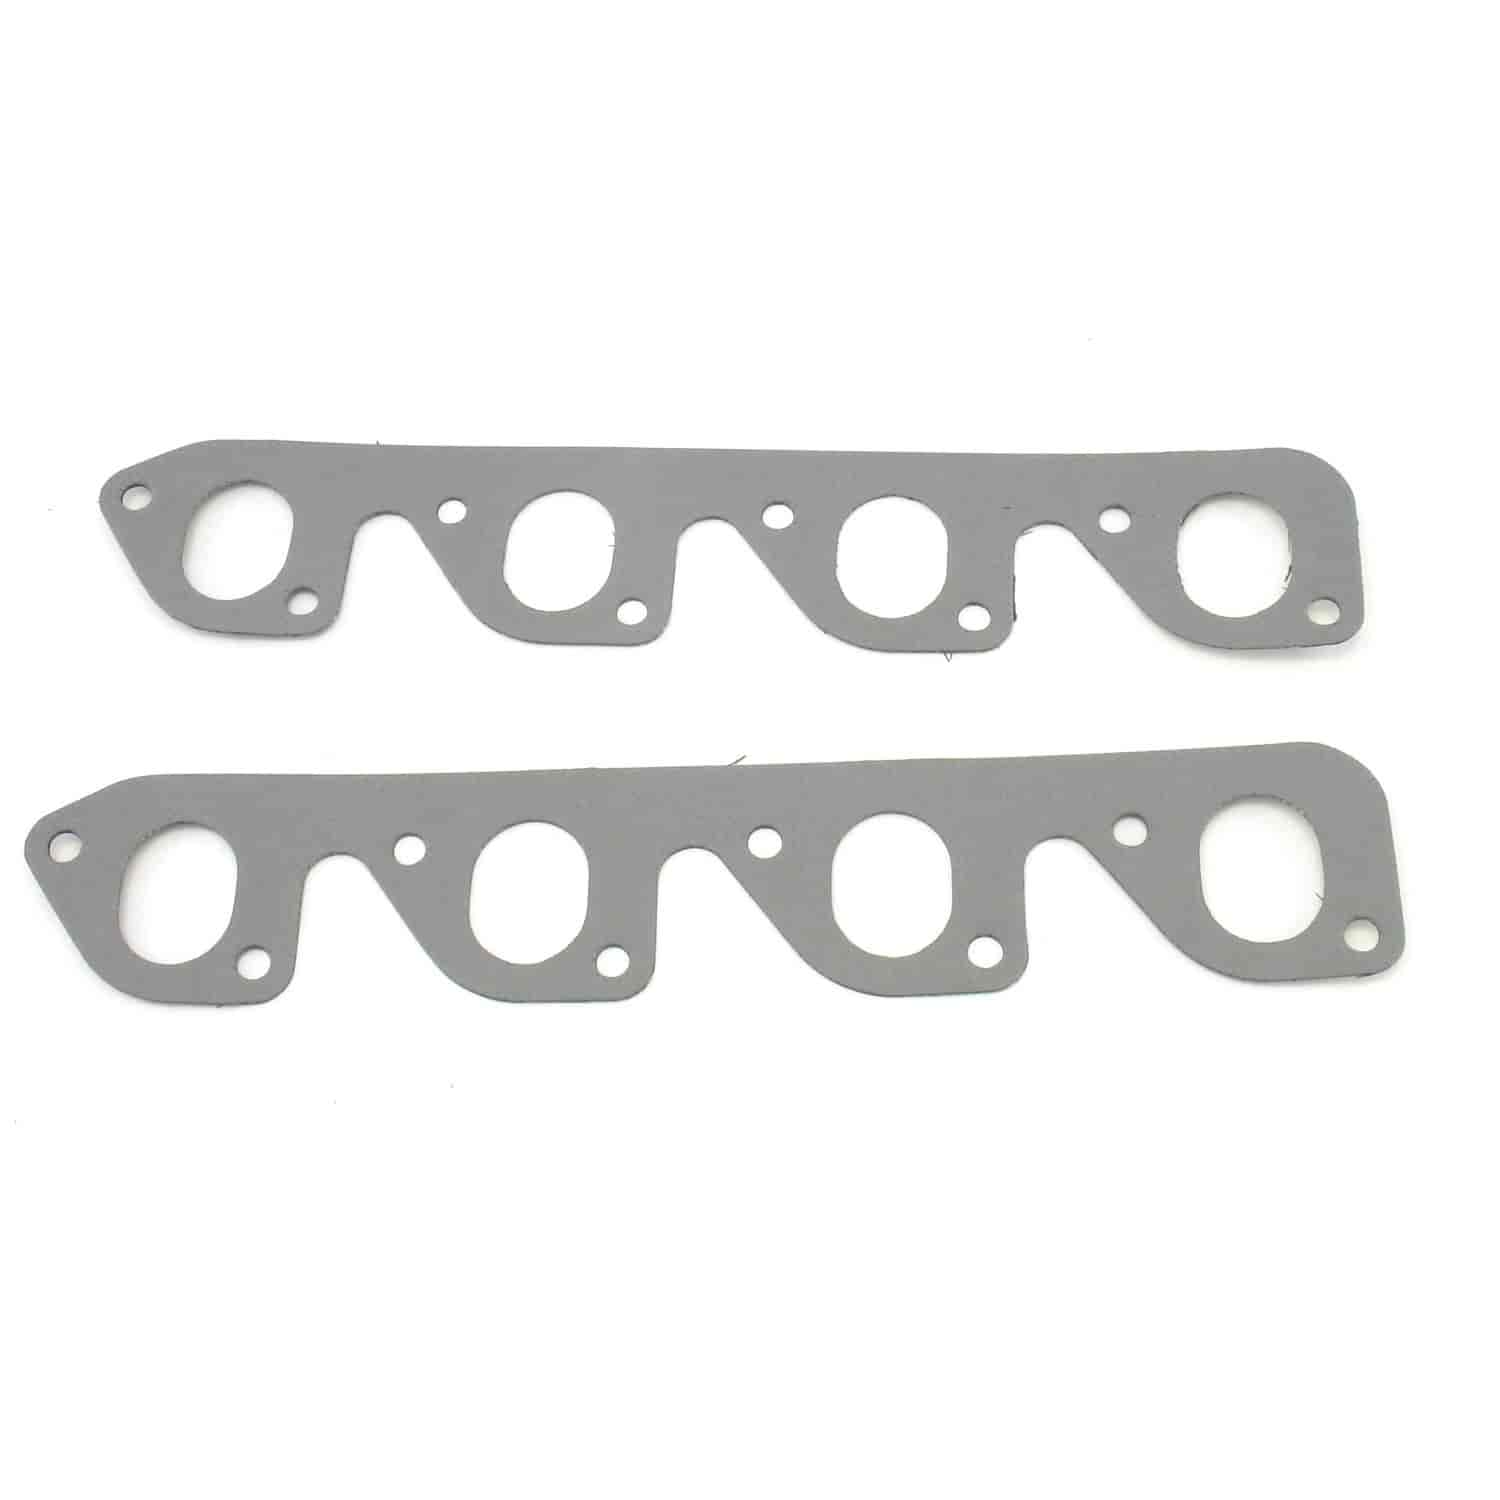 Patriot Exhaust H7596 - Patriot Exhaust Header Flange Gaskets